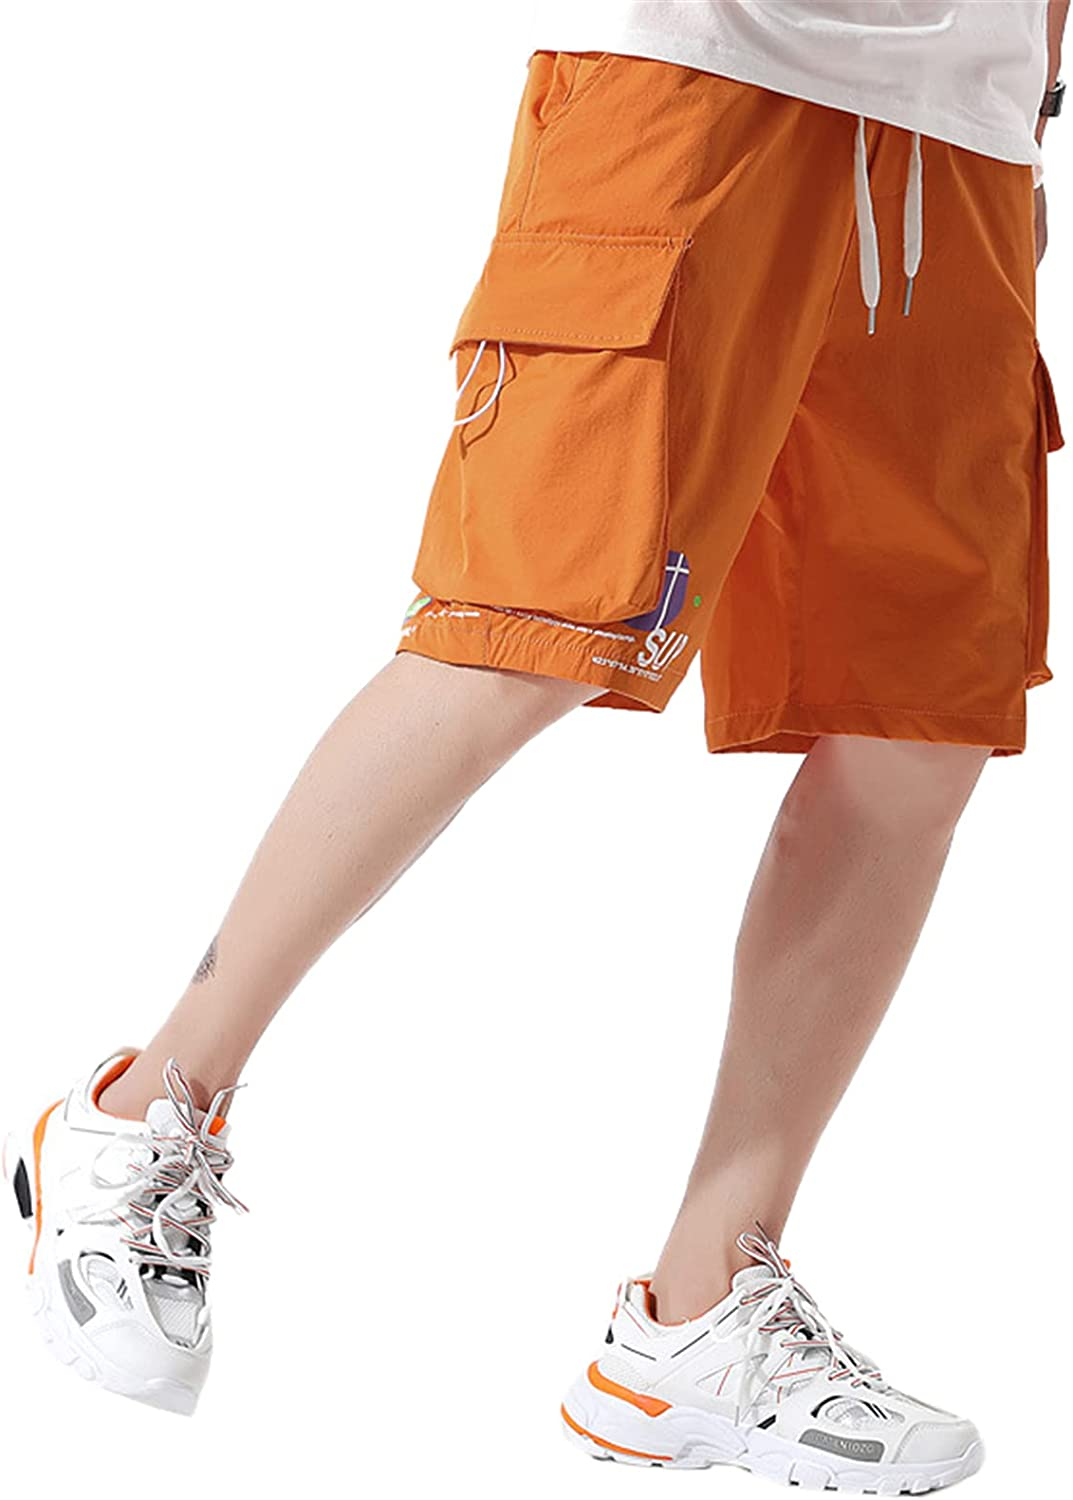 Betusline Teen Boys & Men's Relaxed Fit Drawstring Cargo Shorts, 10 Years - US L